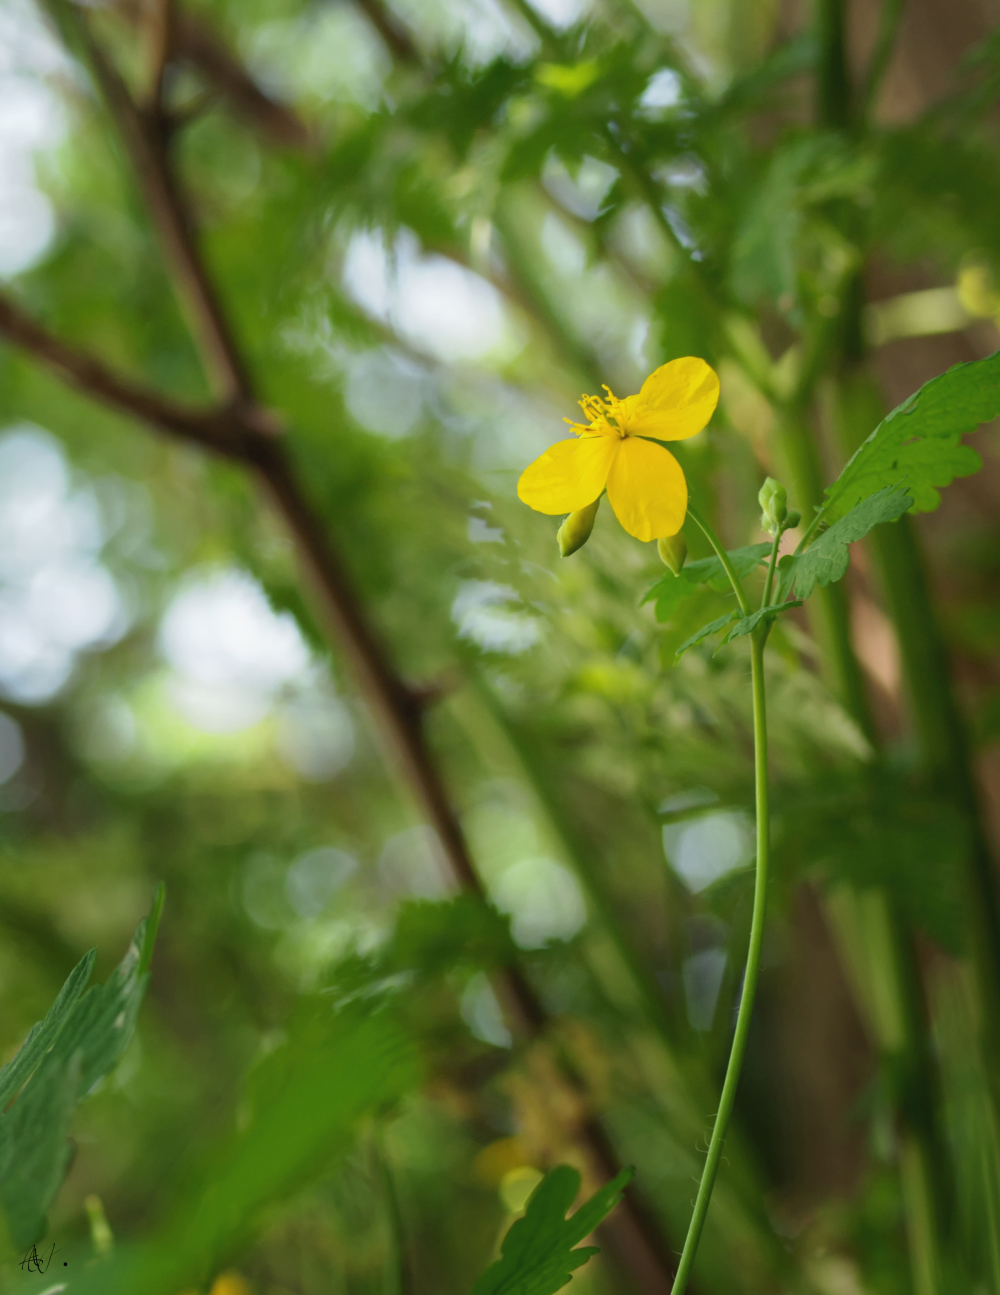 A yellow flower along the roadside